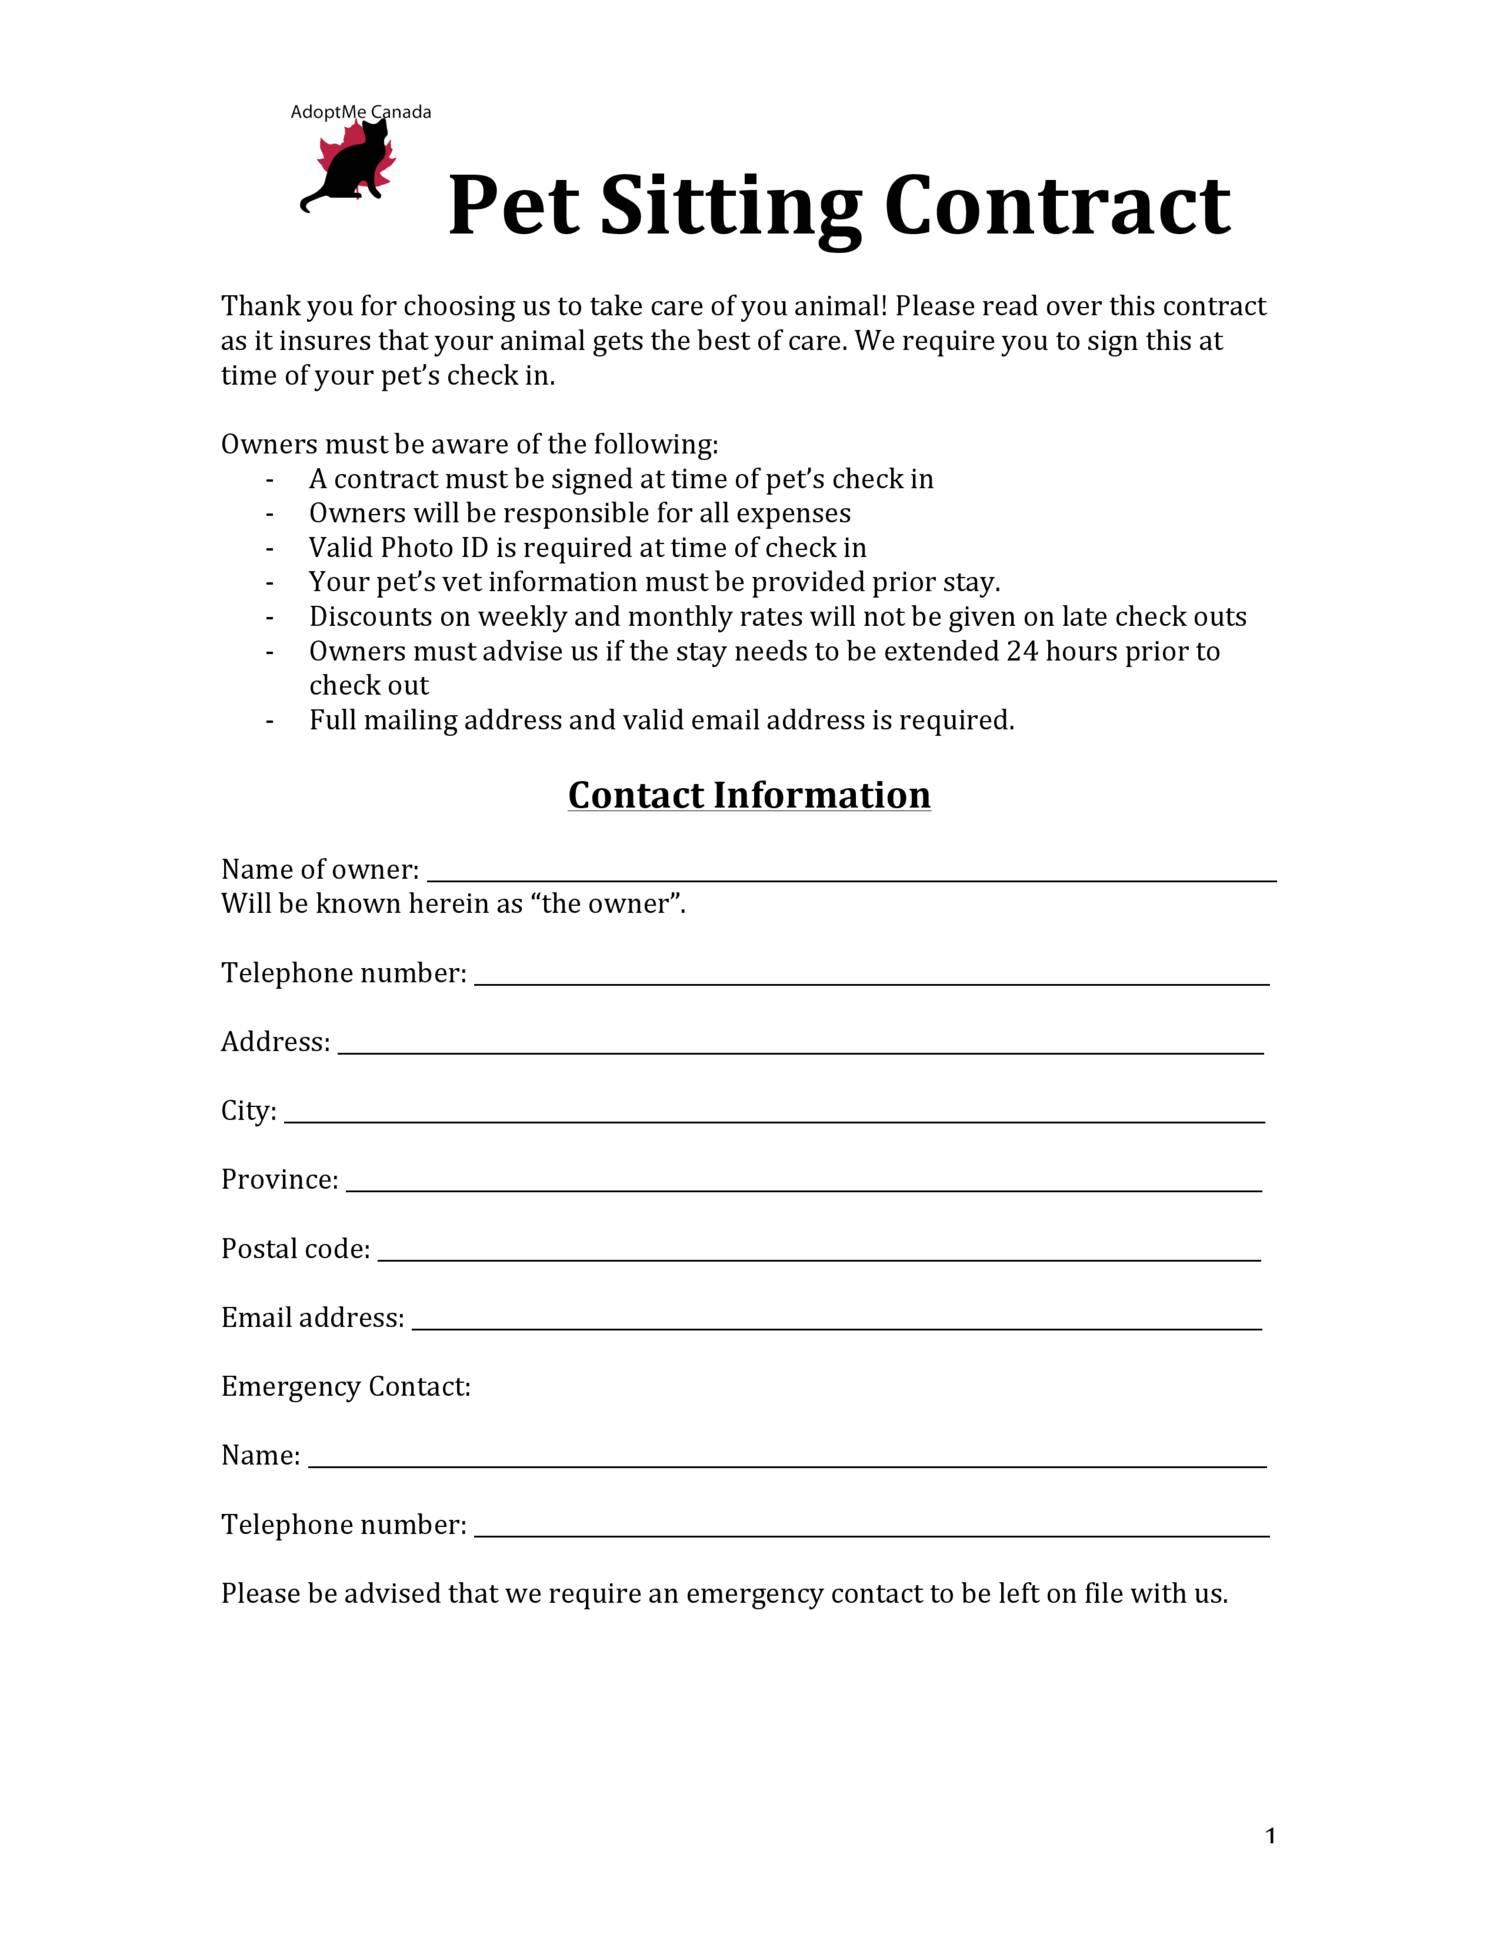 Pet Sitting Contract Reptiles Critters V2 Pdf DocDroid